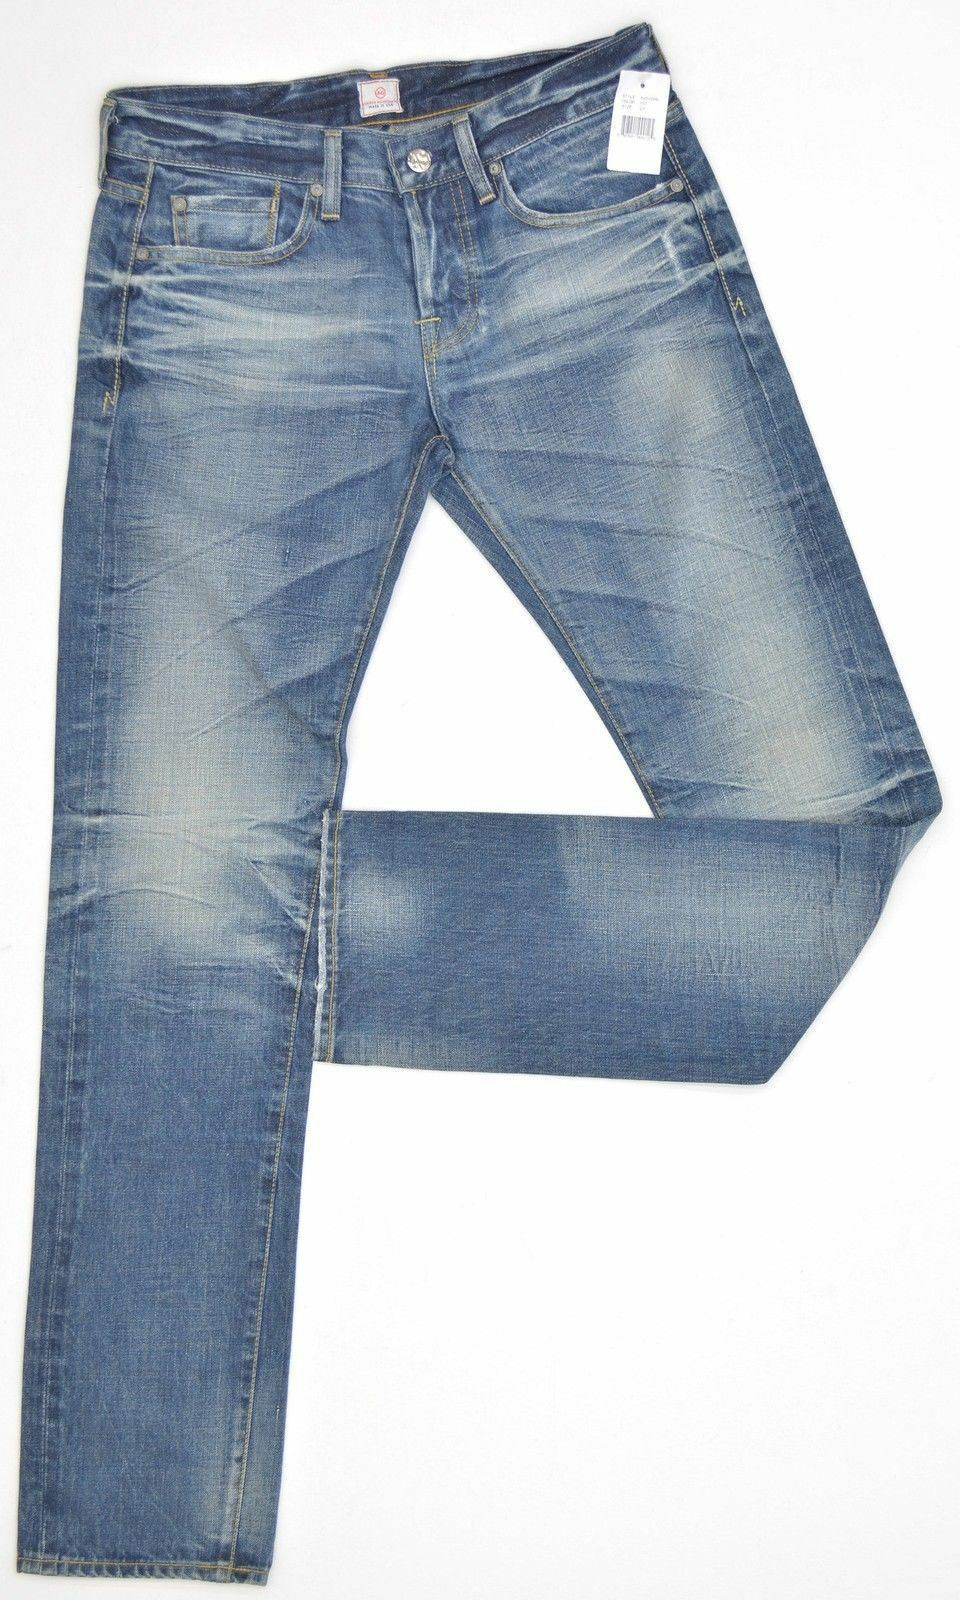 AG Adriano goldschmied Straight Jeans Sz 27 bluee Distressed SAMPLE NEW 6770